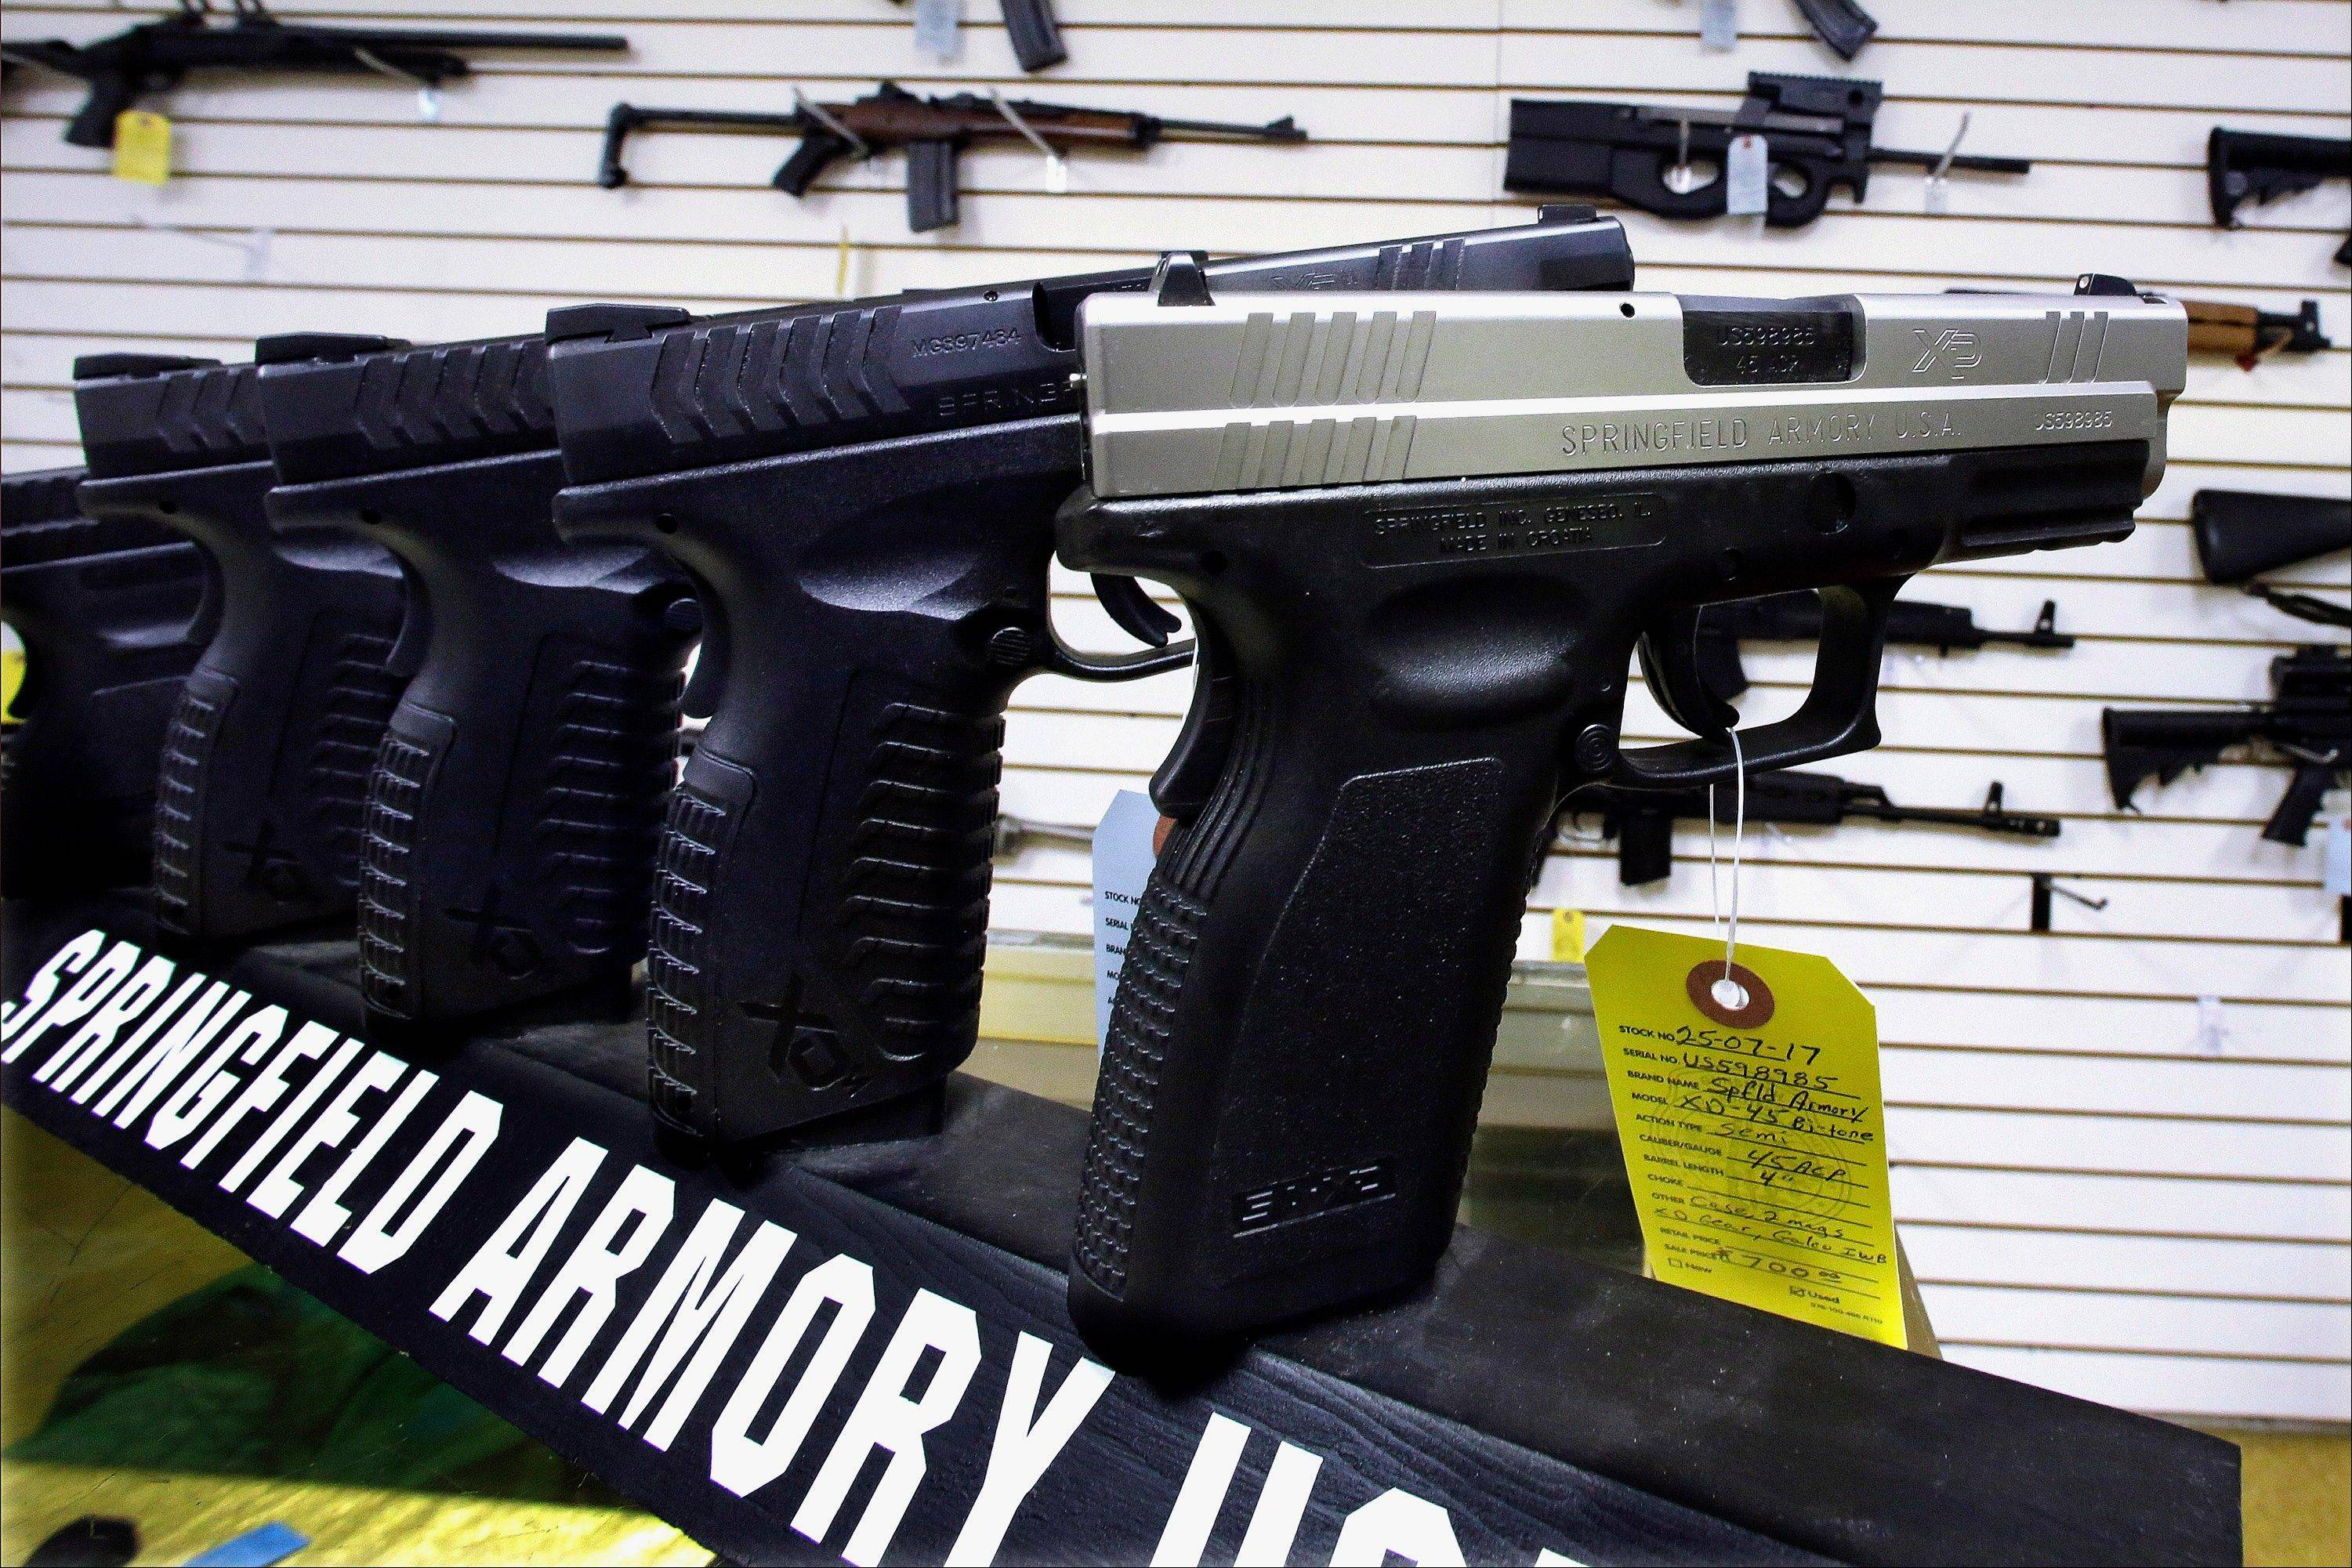 Illinois has until Tuesday to legalize concealed carry after a federal appeals court ruled the state�s ban unconstitutional.